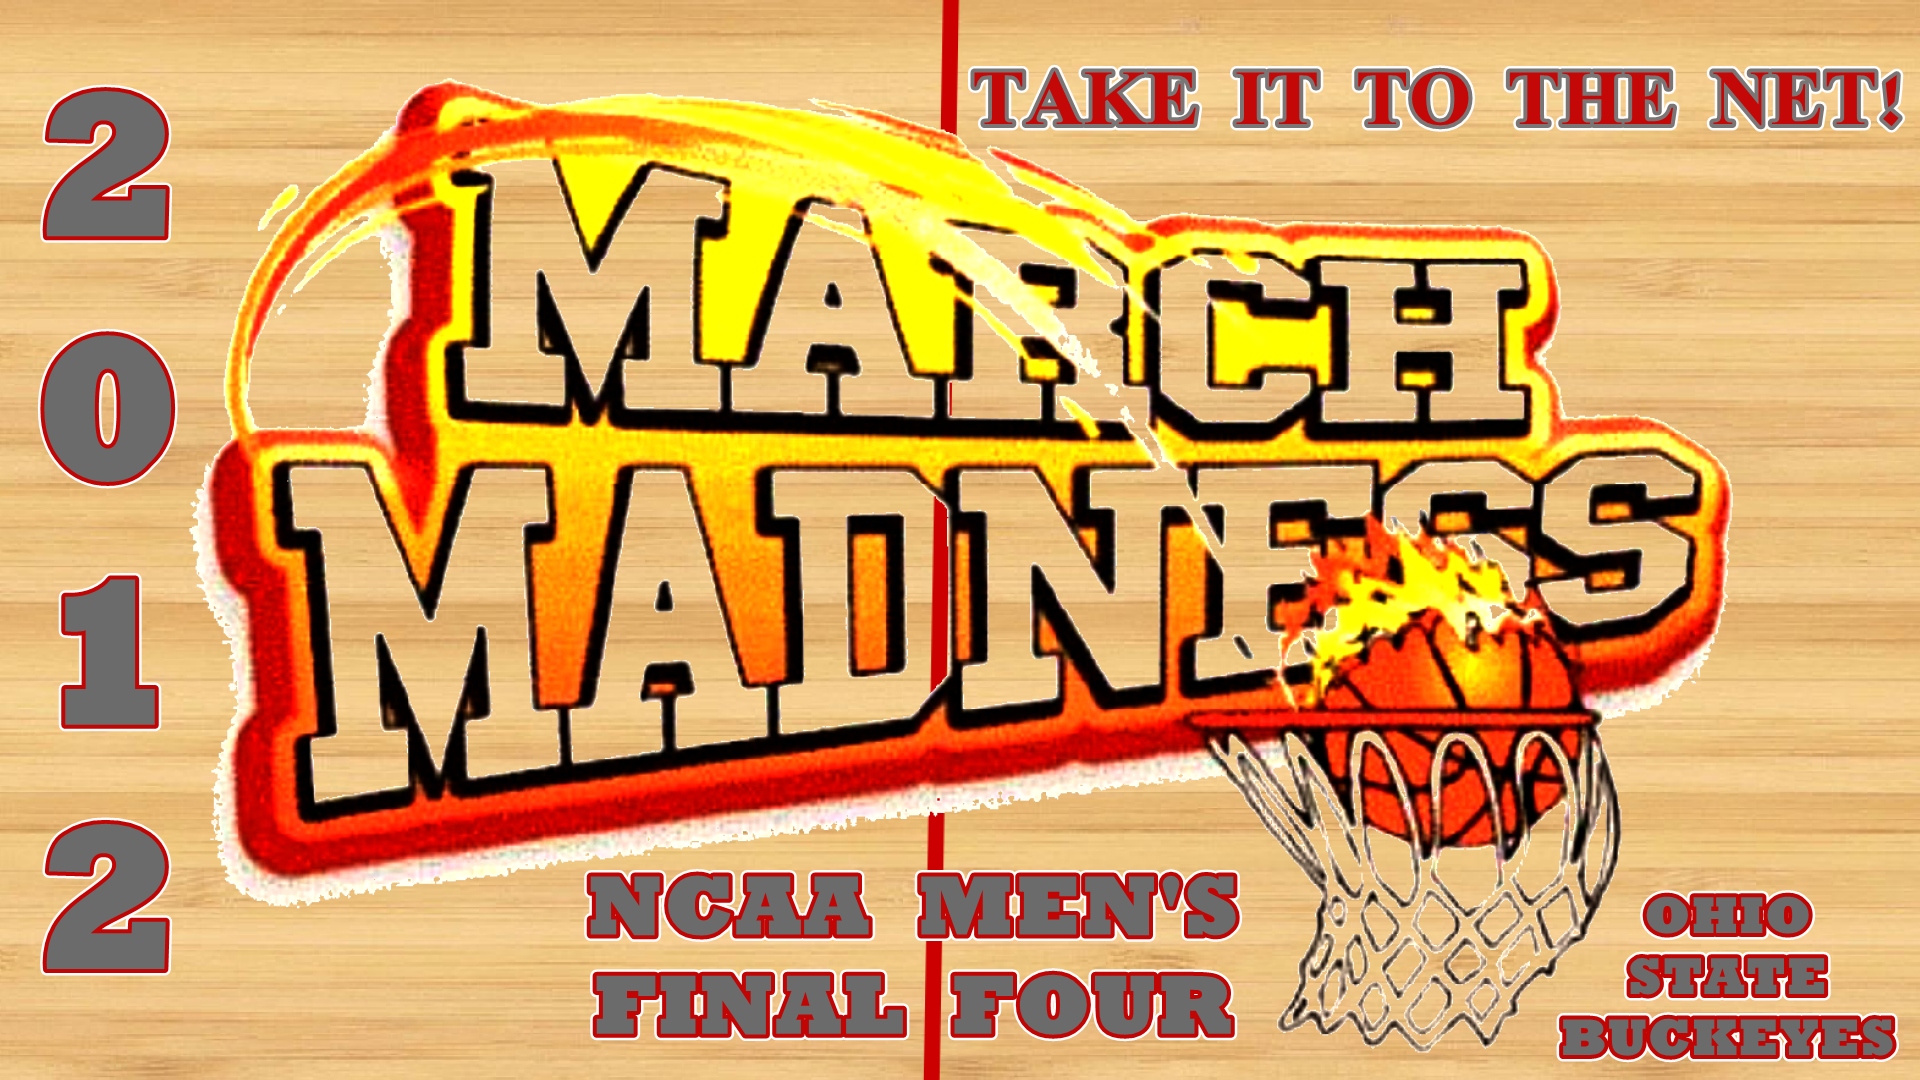 MARCH MADNESS NCAA MENS FINAL FOUR   Ohio State University Basketball 1920x1080